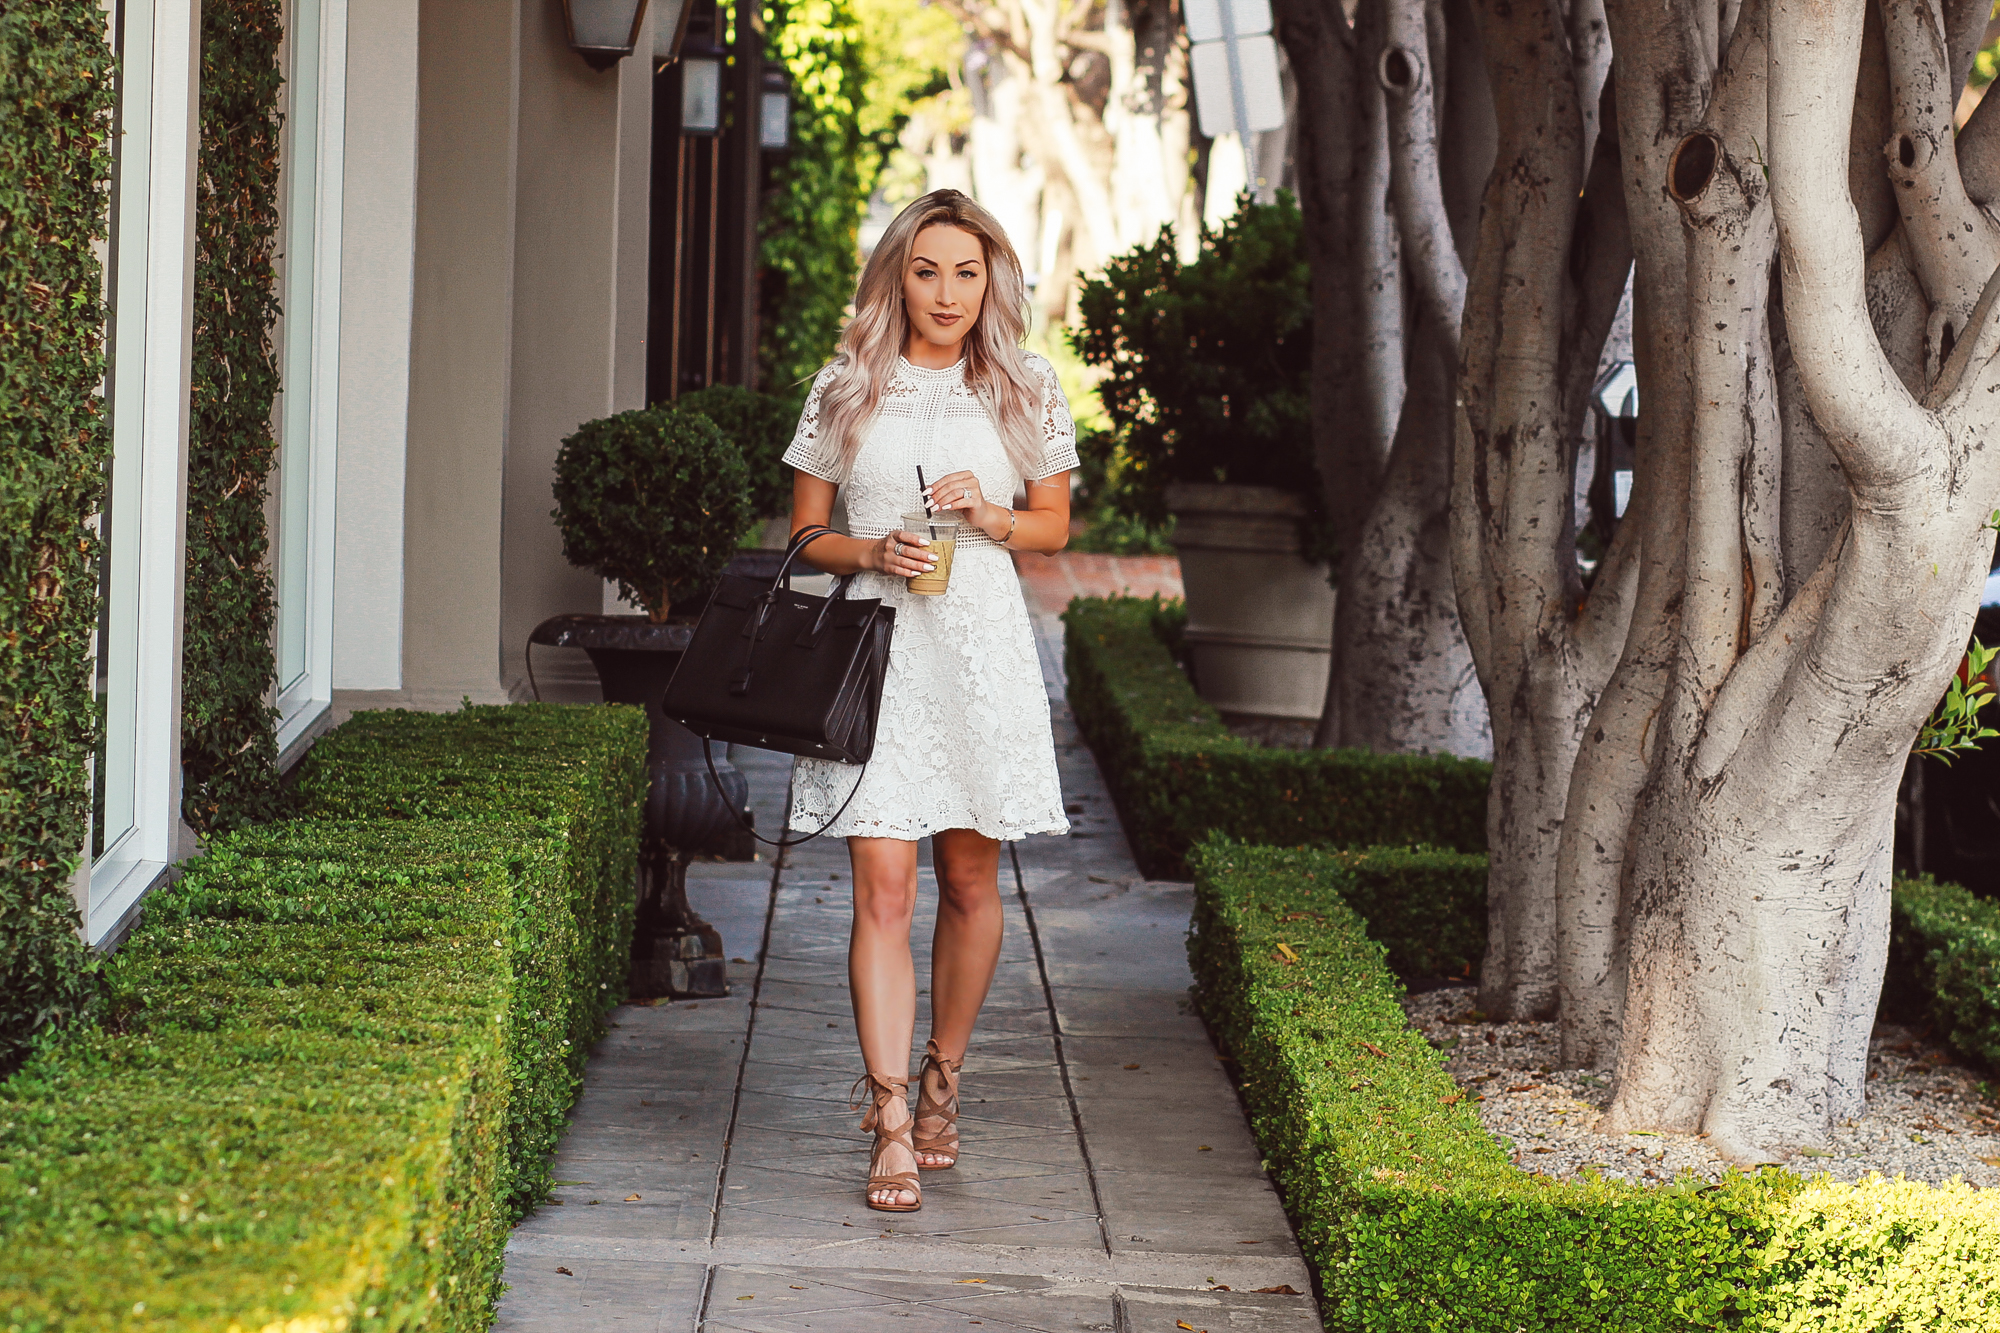 Blondie in the City | White Lace Bridal Shower Dress @chiciwsh | YSL Bag | Saint Laurent Sac De Jour Bag